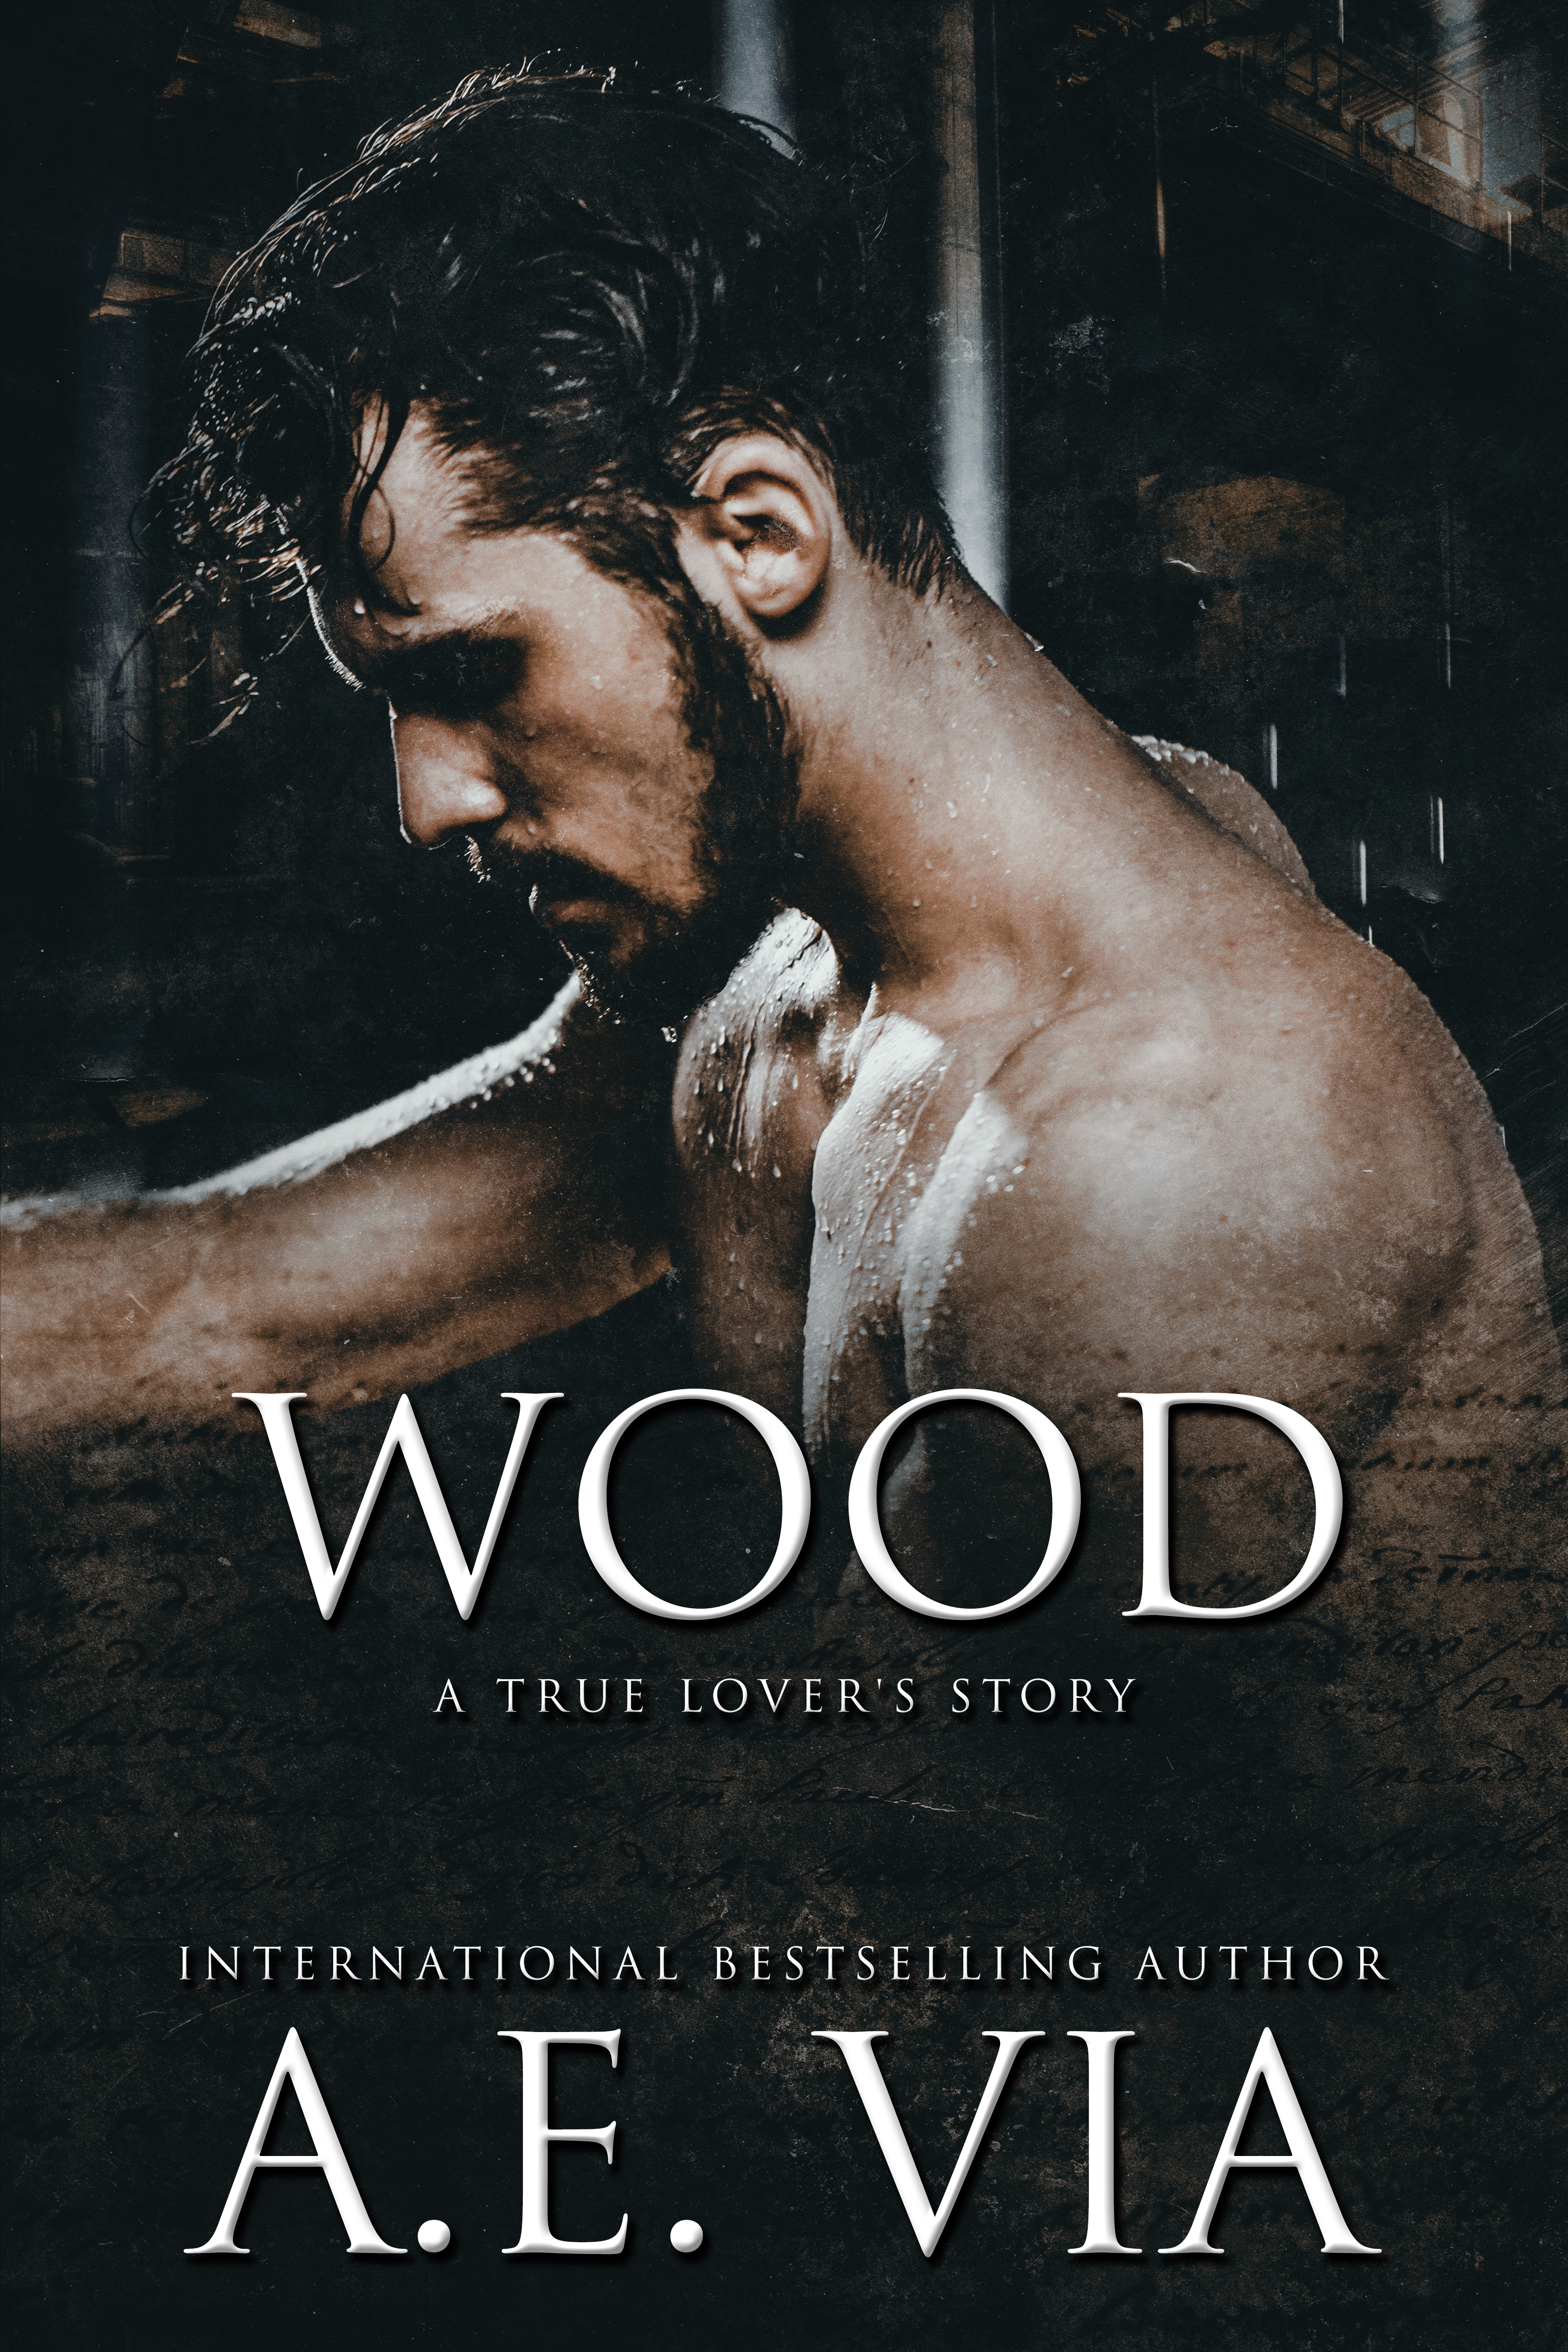 Wood: A True Lover's Story